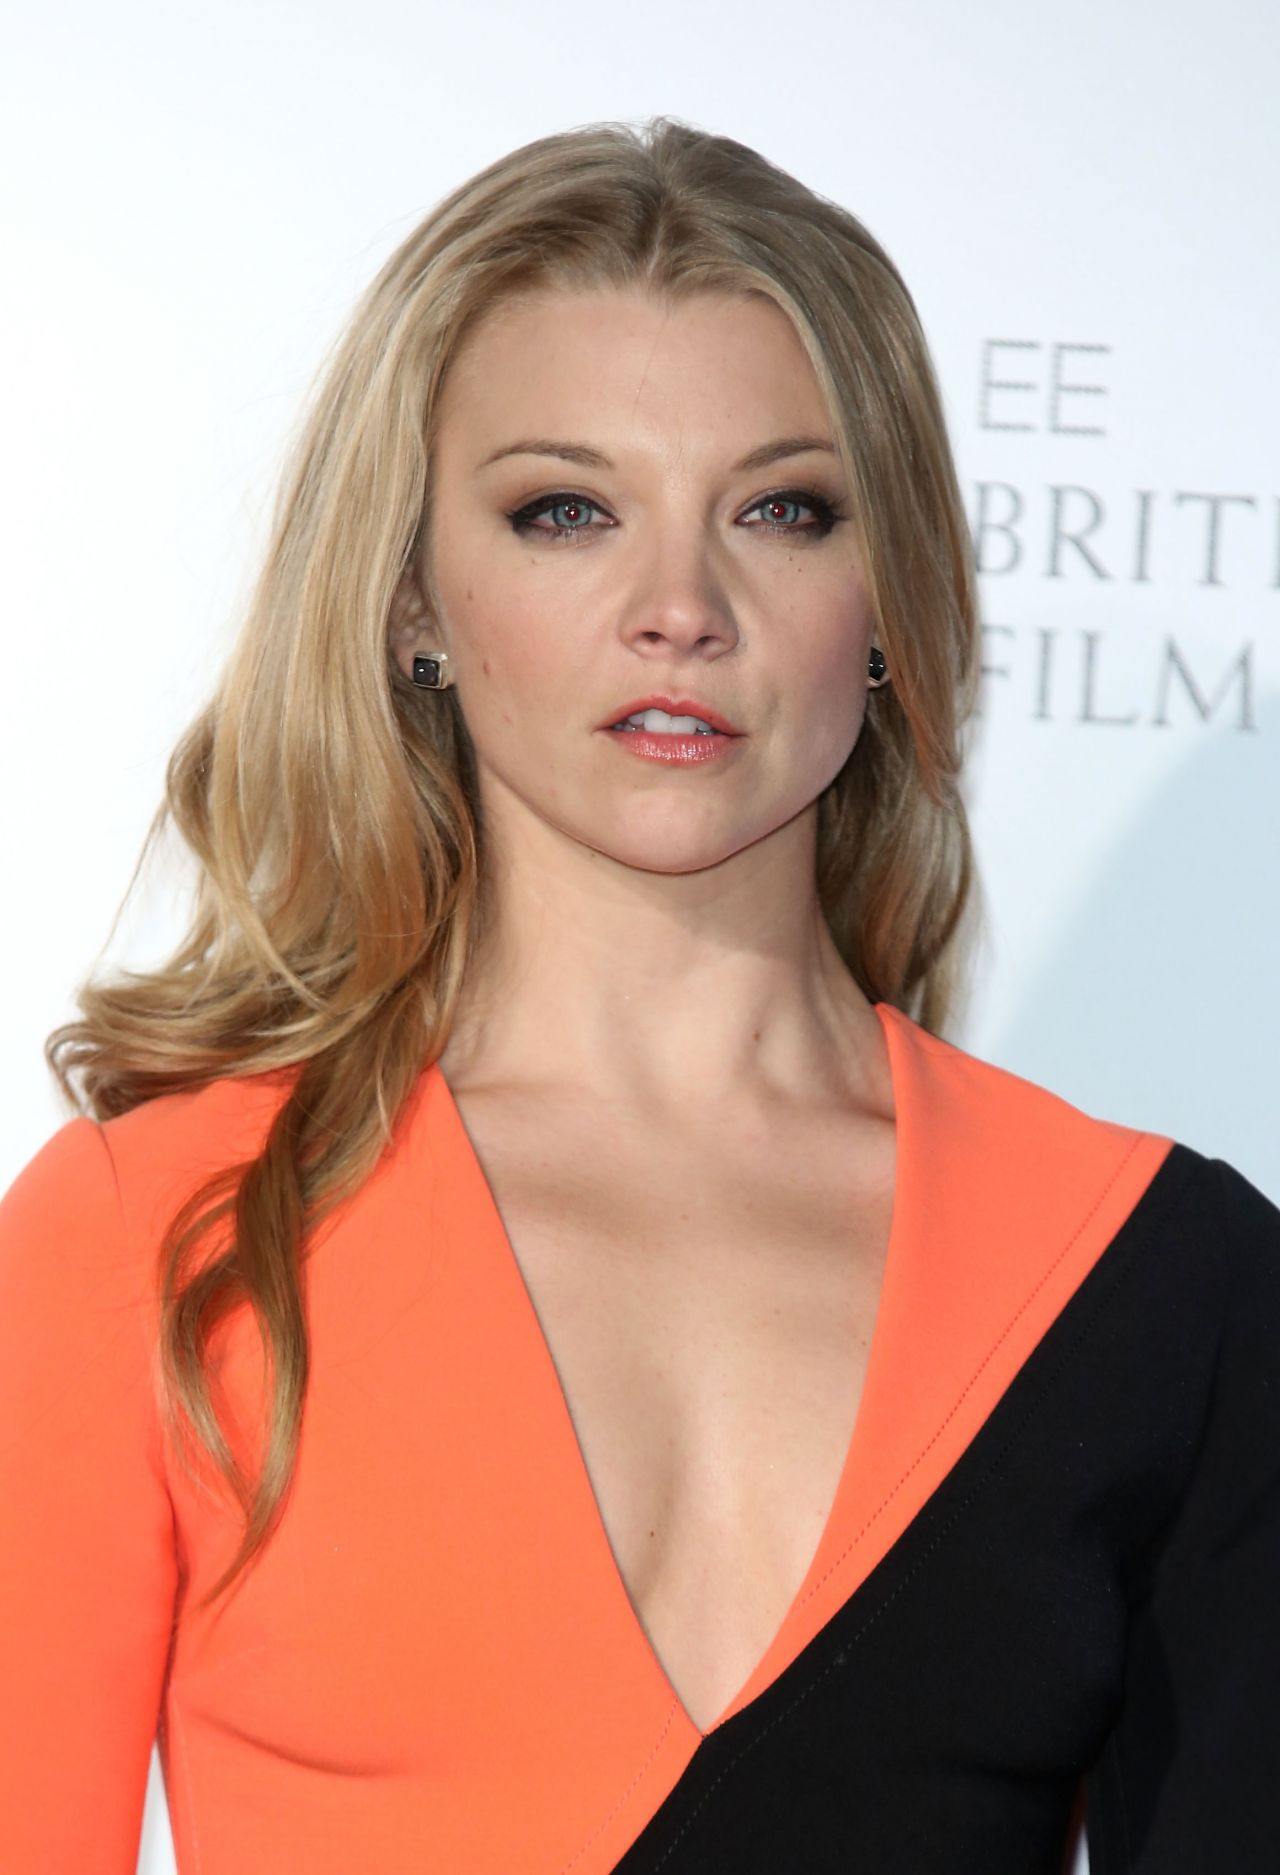 Natalie Dormer Ee British Academy Awards 2015 Nominees